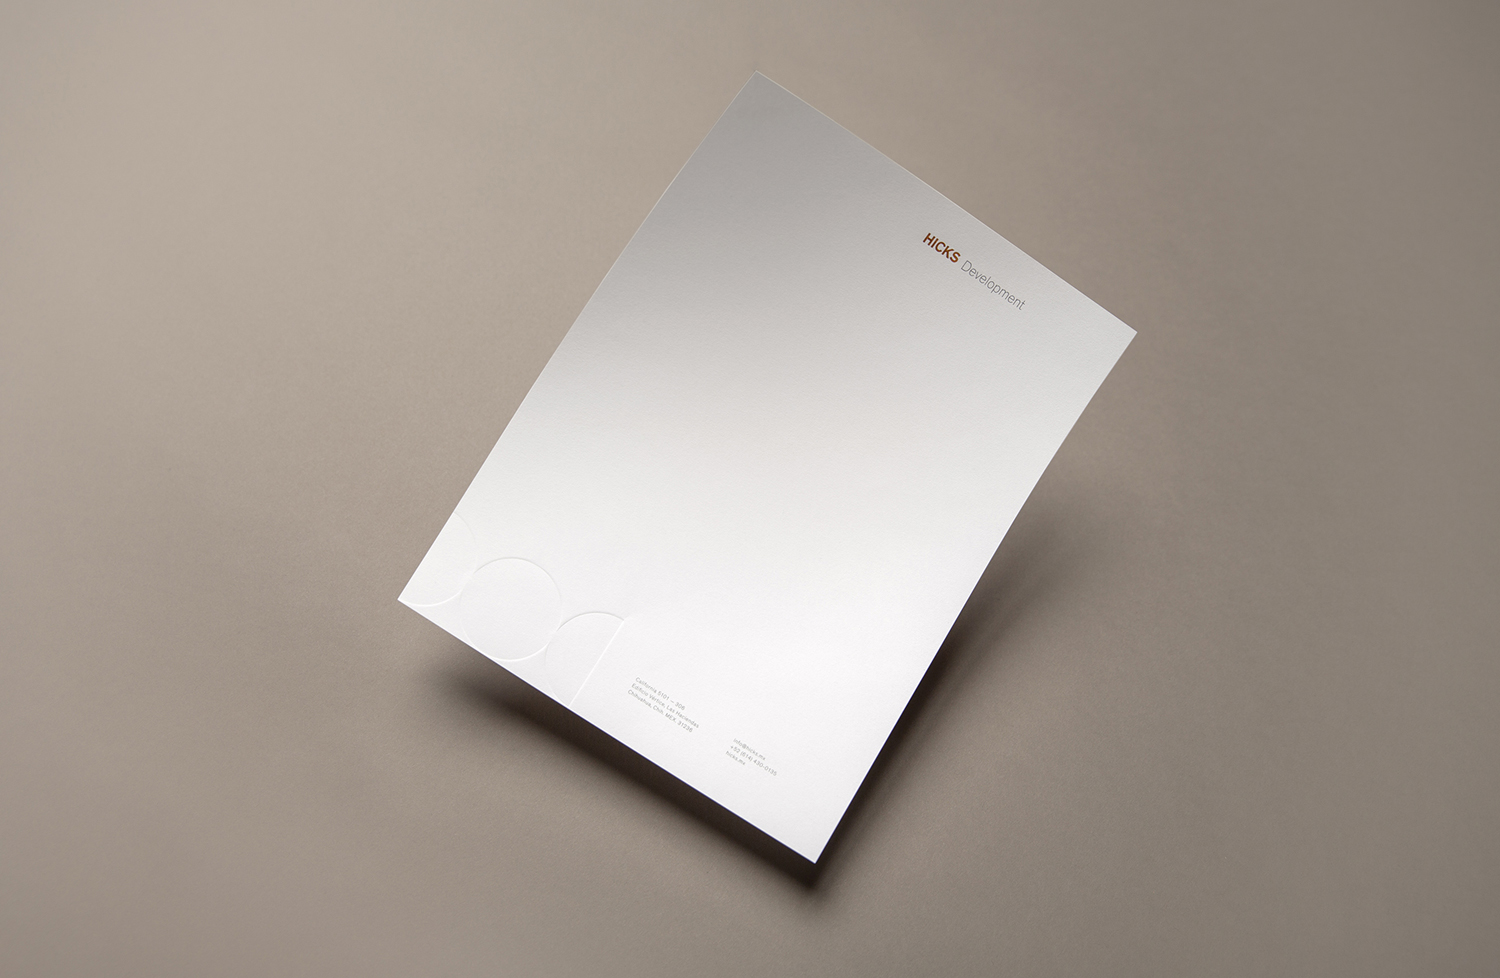 Brand identity and headed paper designed by Face for Mexican real estate group Hicks.